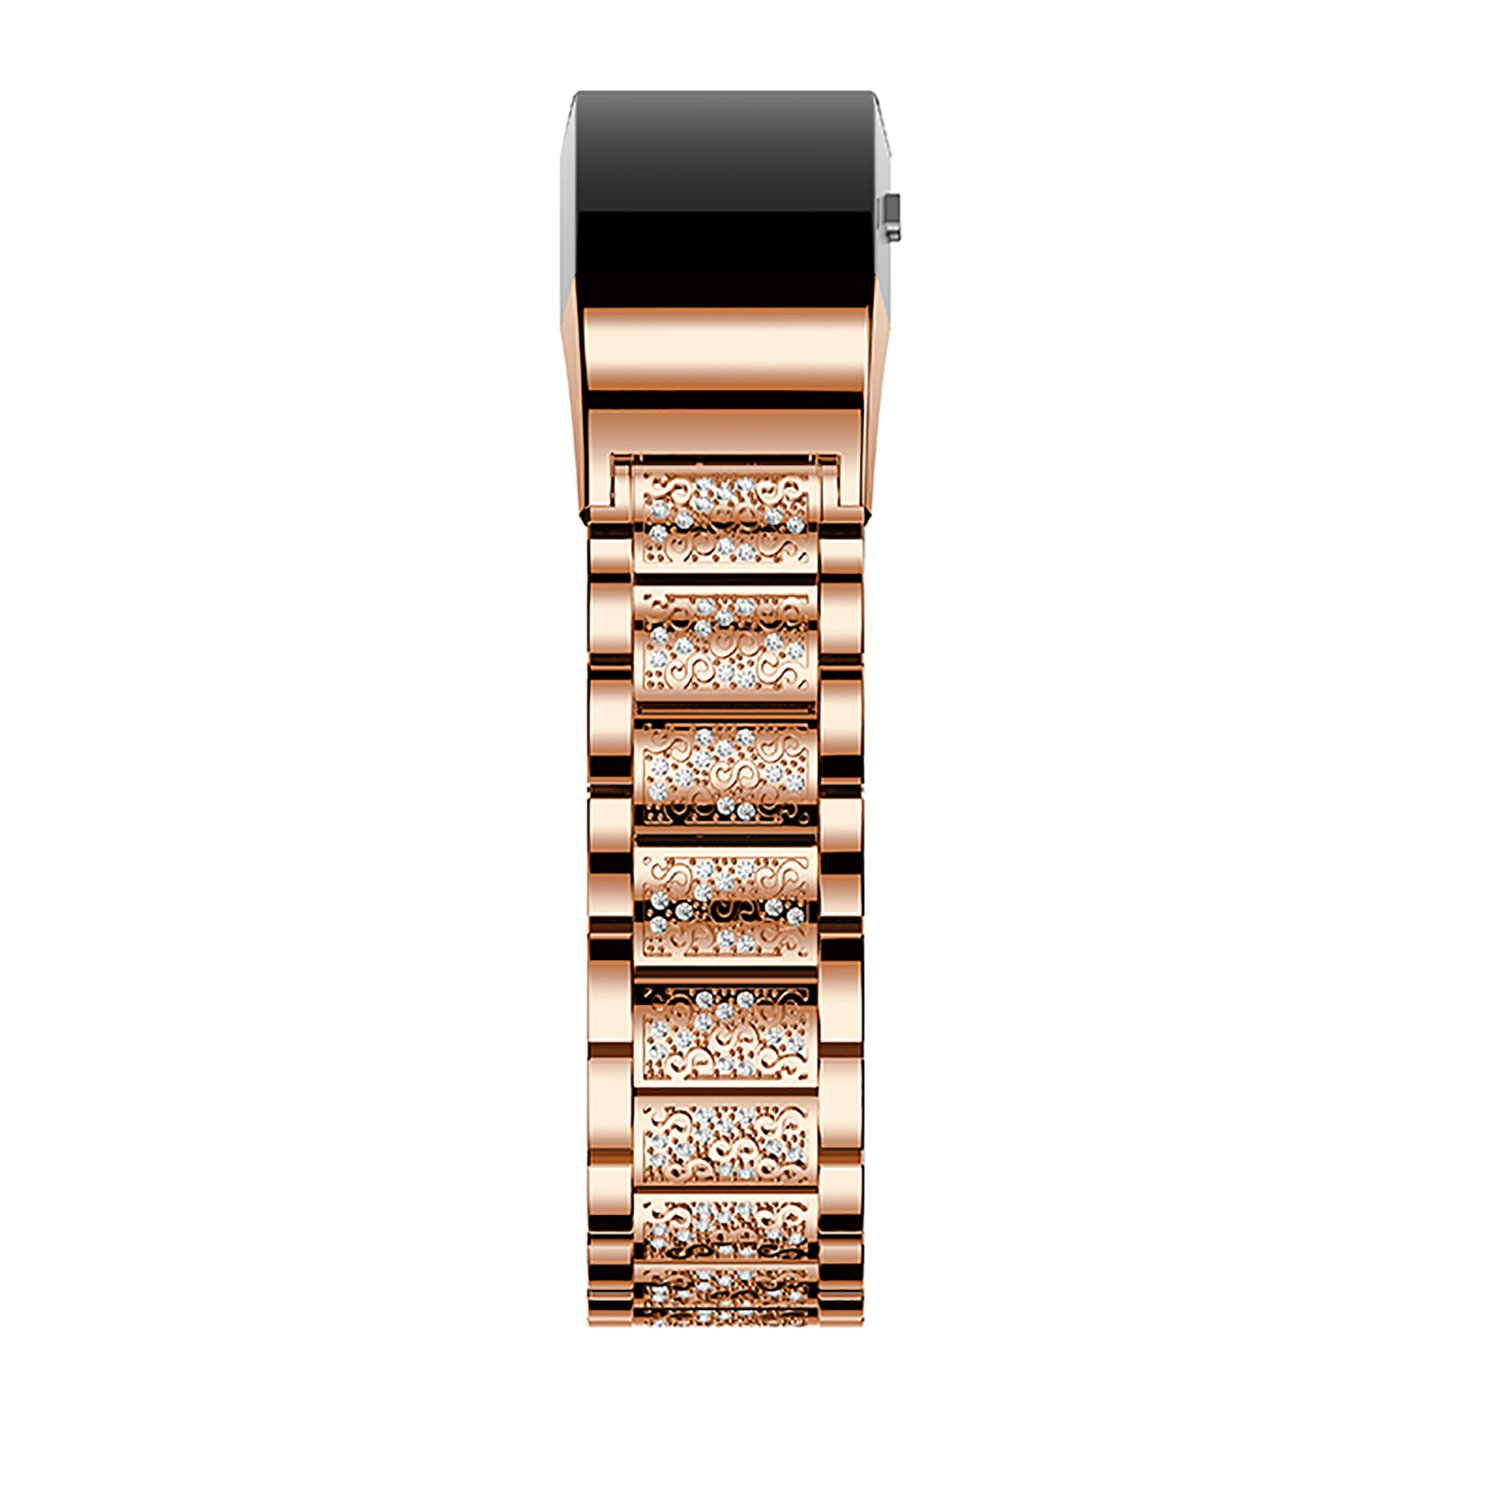 Fitbit Charge 2 Band, iBazal Stainless Steel Watch Band with Crystal Rhinestone Chain Bracelet Replacement Strap for Fitbit Charge 2 - Stylish Rose Gold